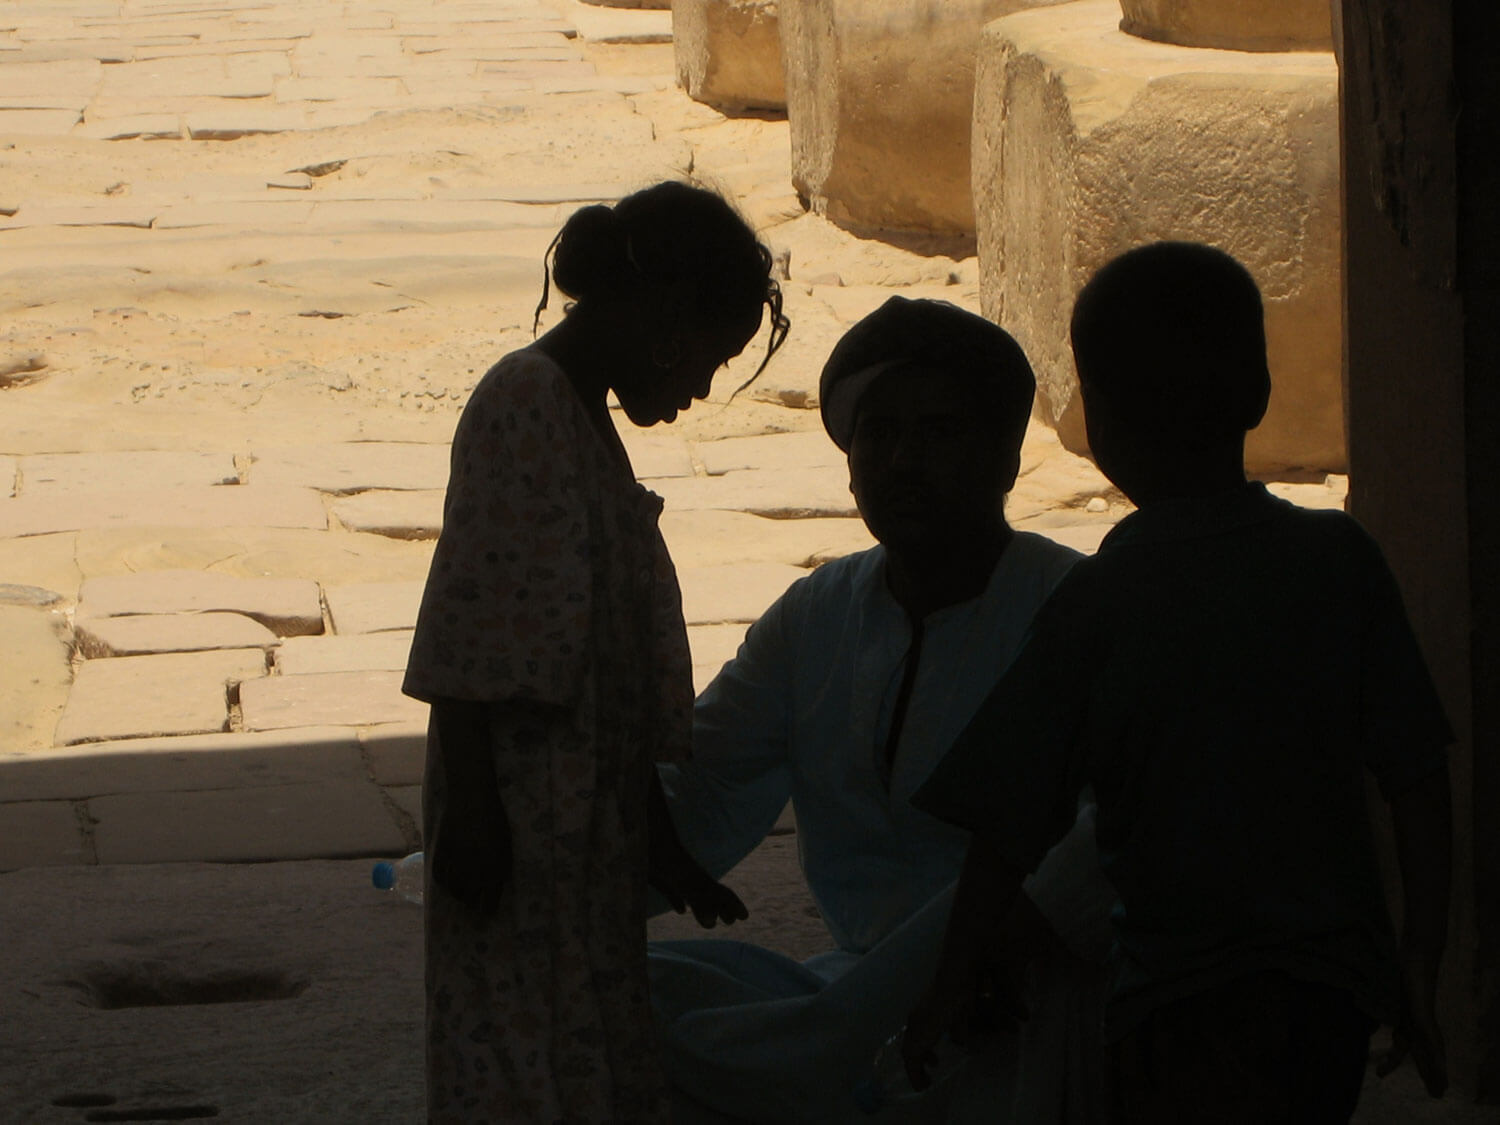 egypt-luxor-family-arab.jpg